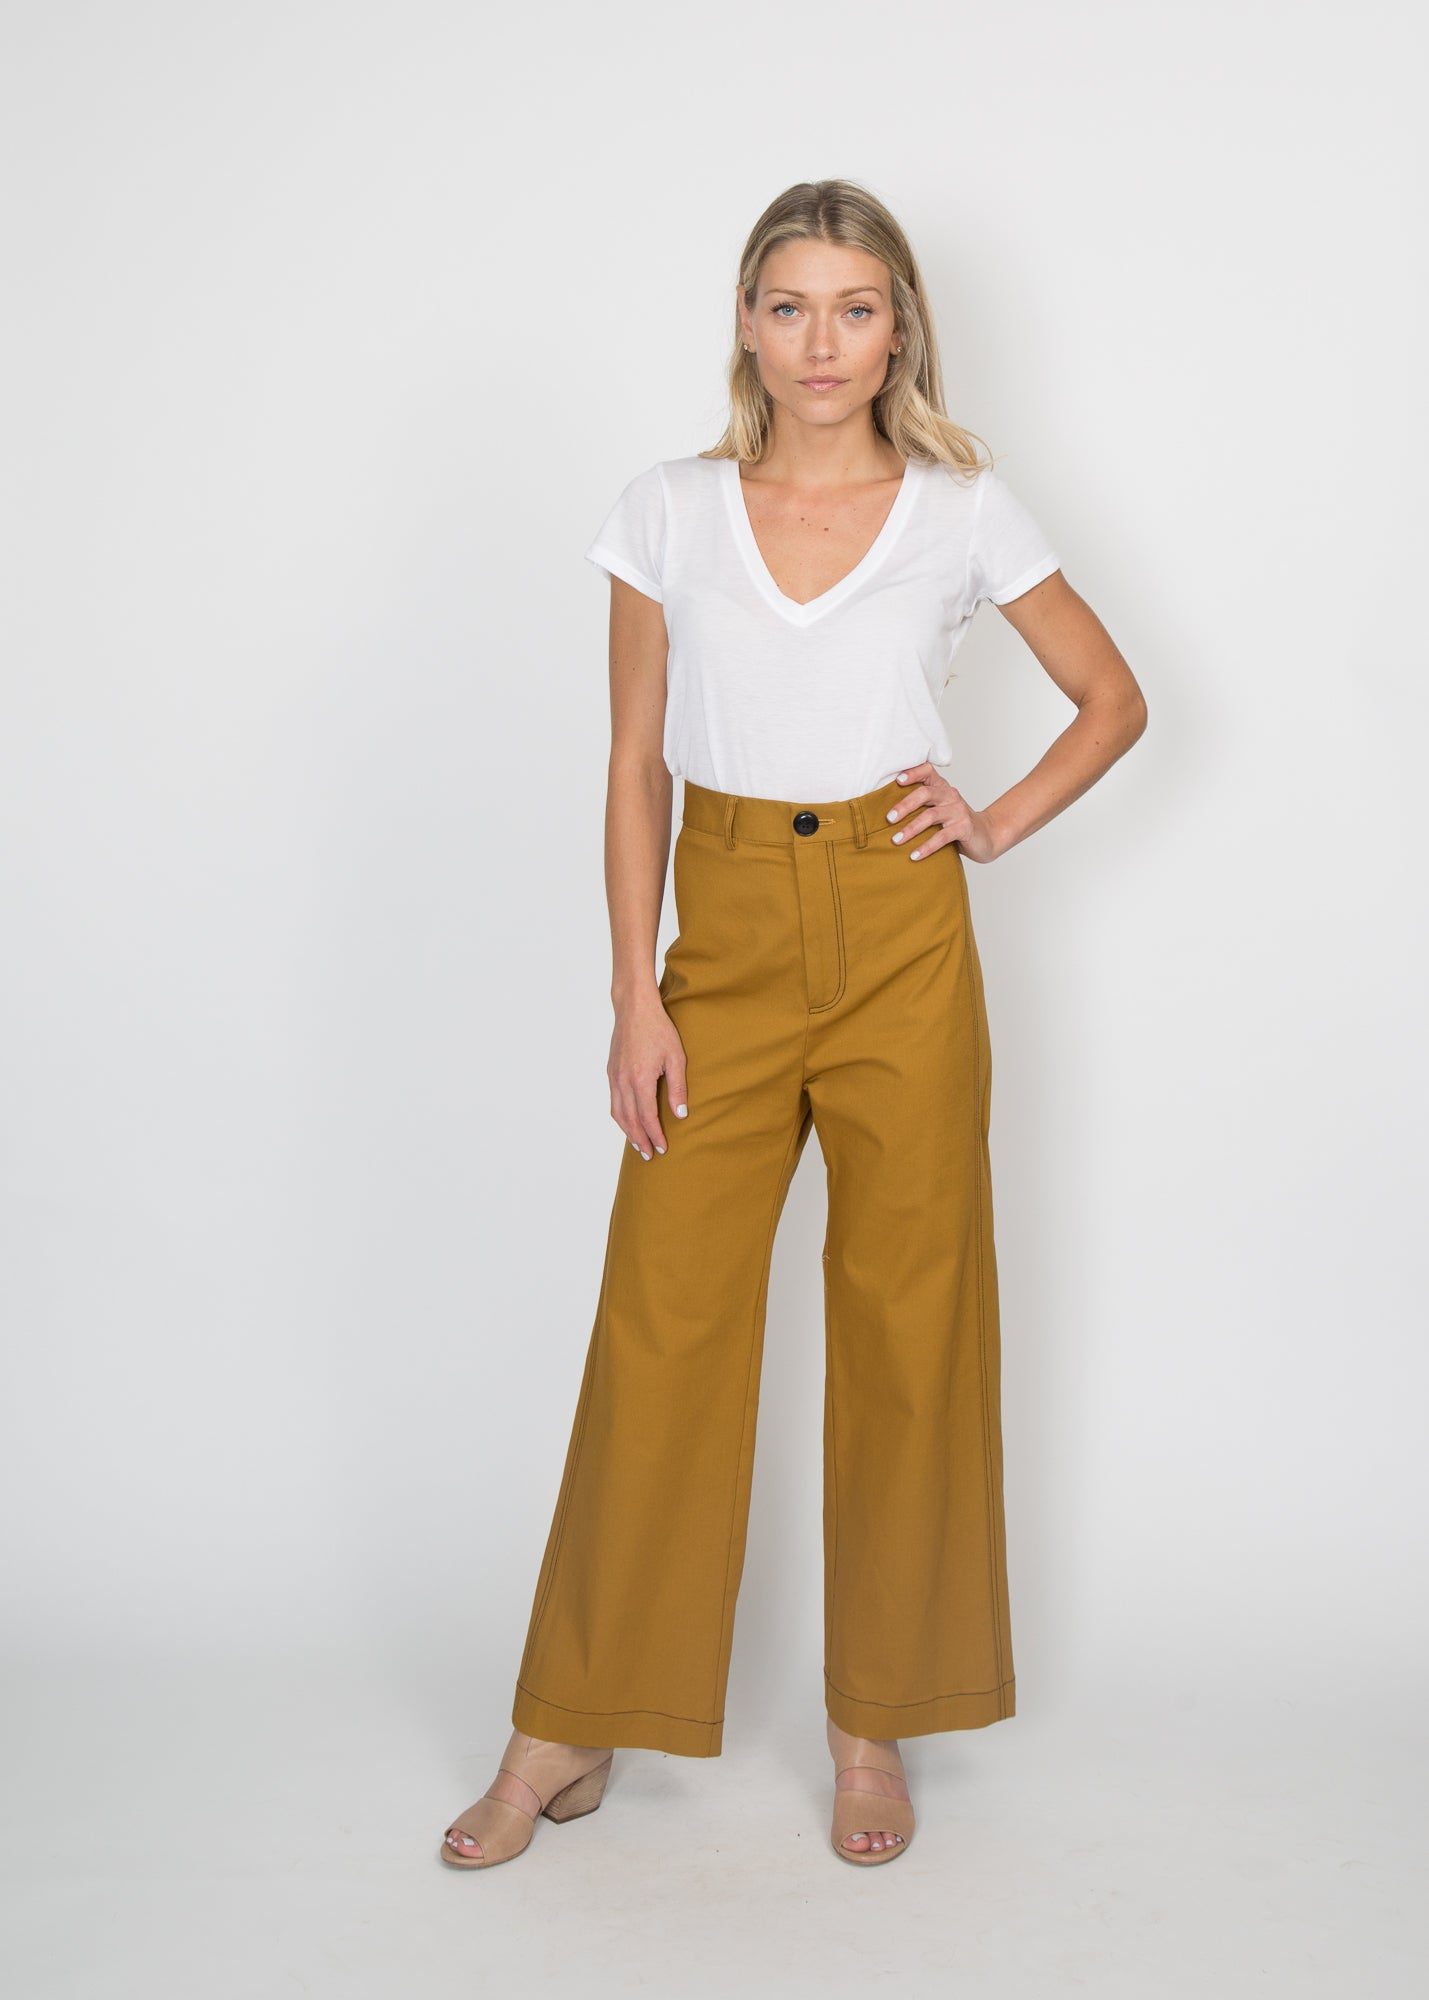 SEA NY Stevie Sailor Pant Brass